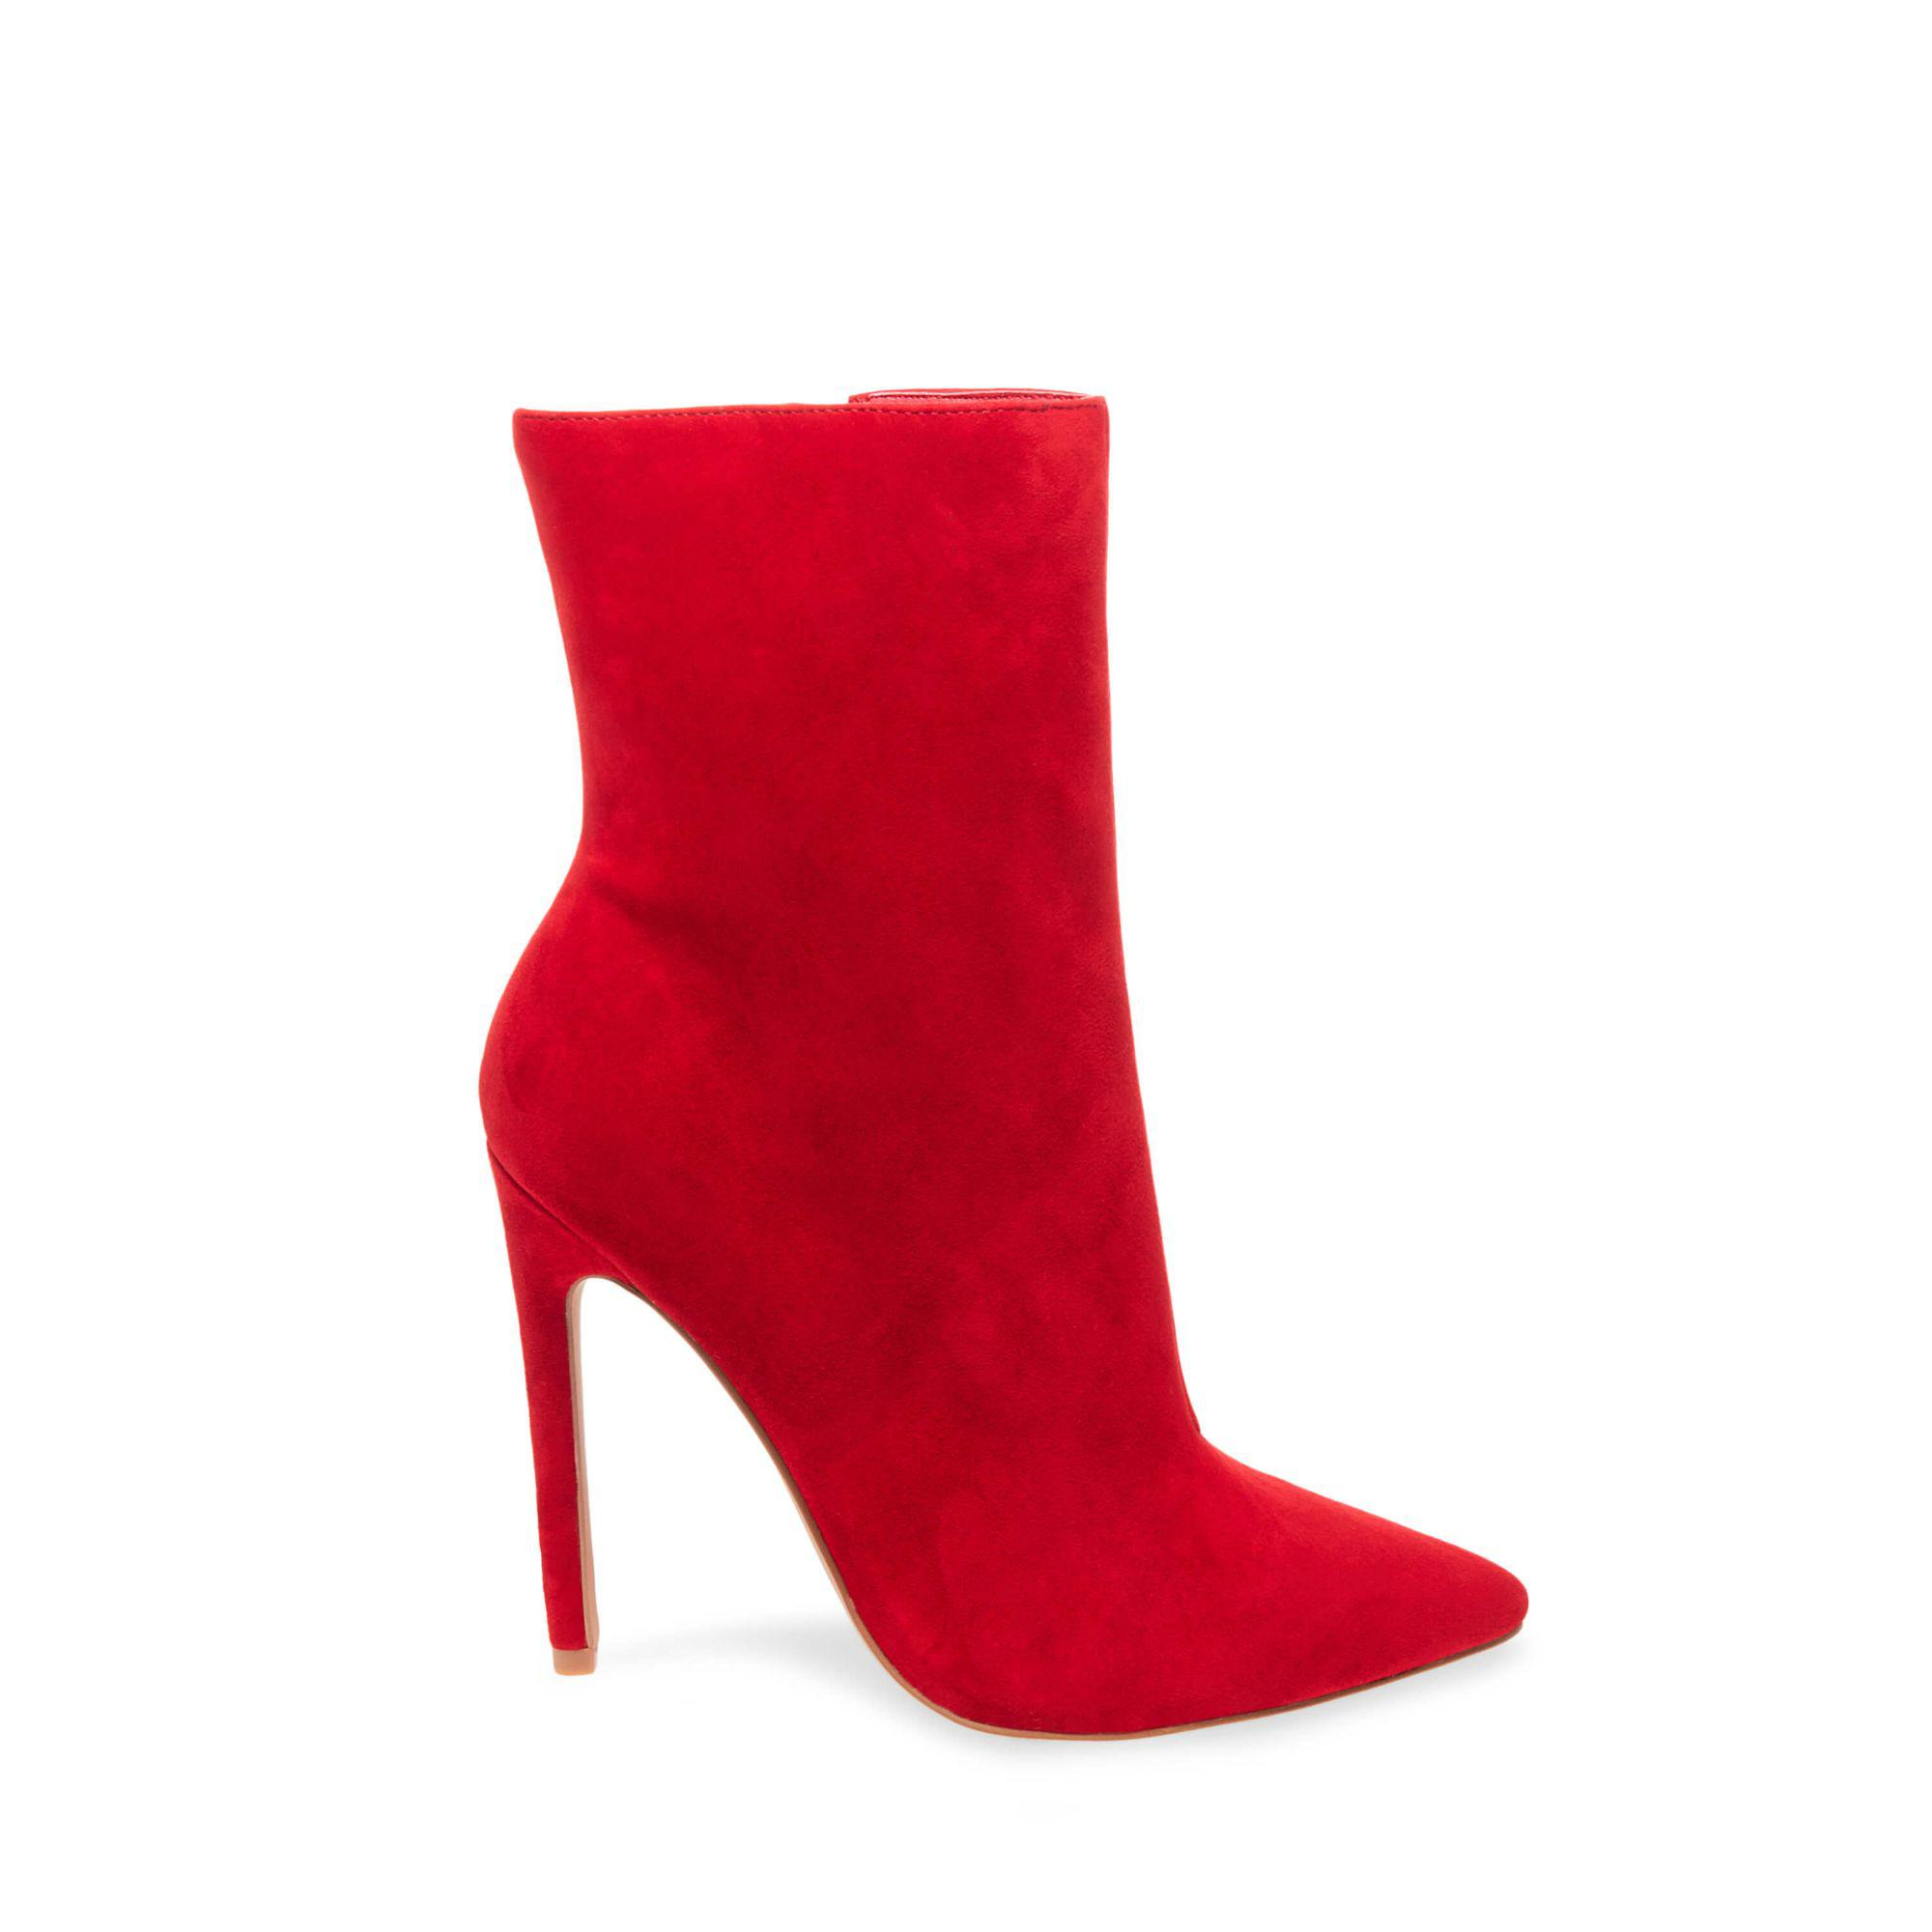 4f84d3d08df Lyst - Steve Madden Wagner in Red